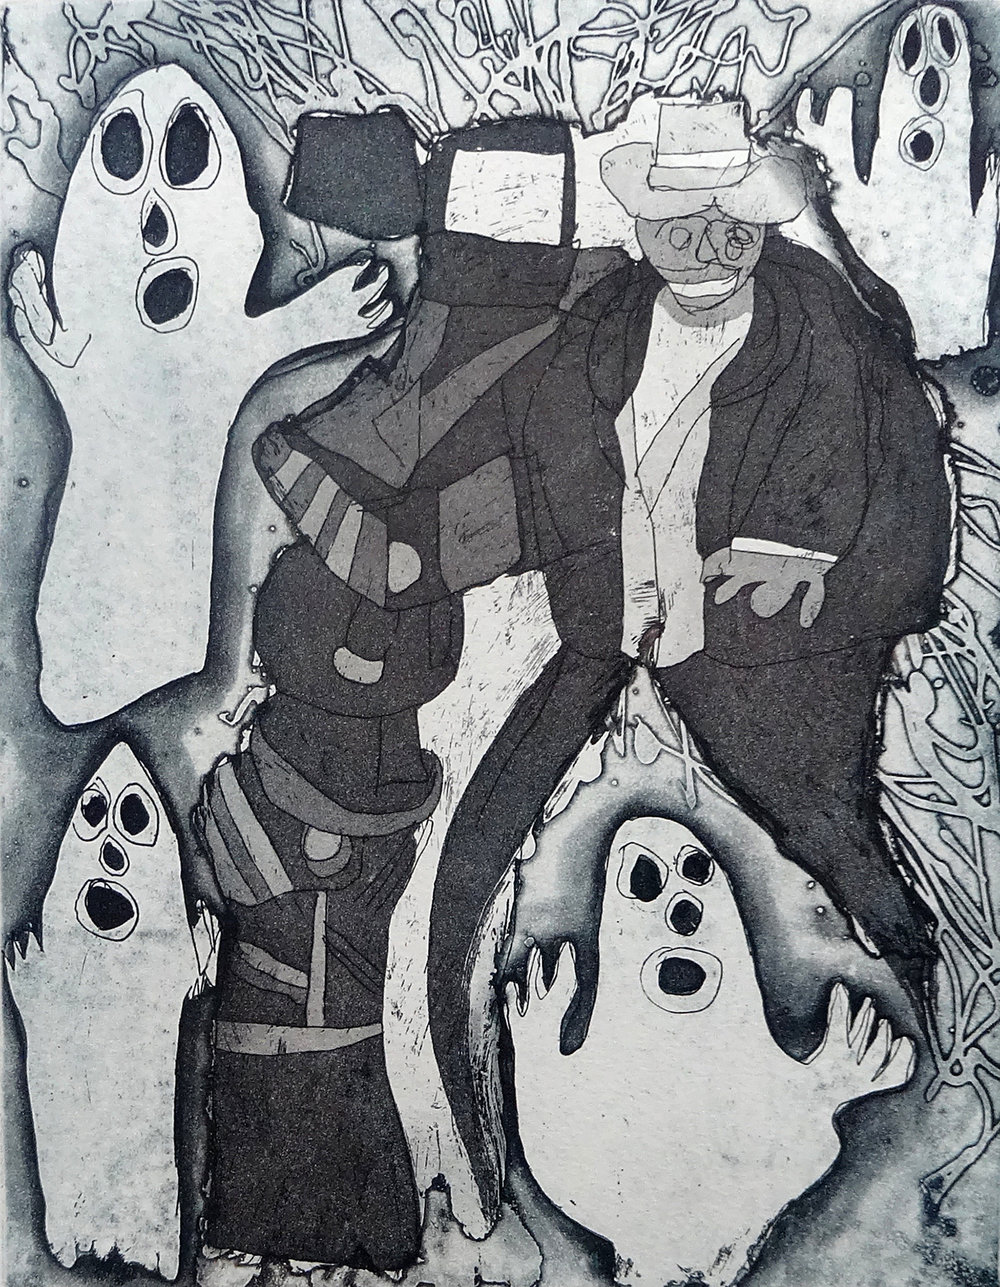 Mathew Calandra, Ghost Movie, 2015, Etching on Paper, on show at Sydney Contemporary Art Fair.